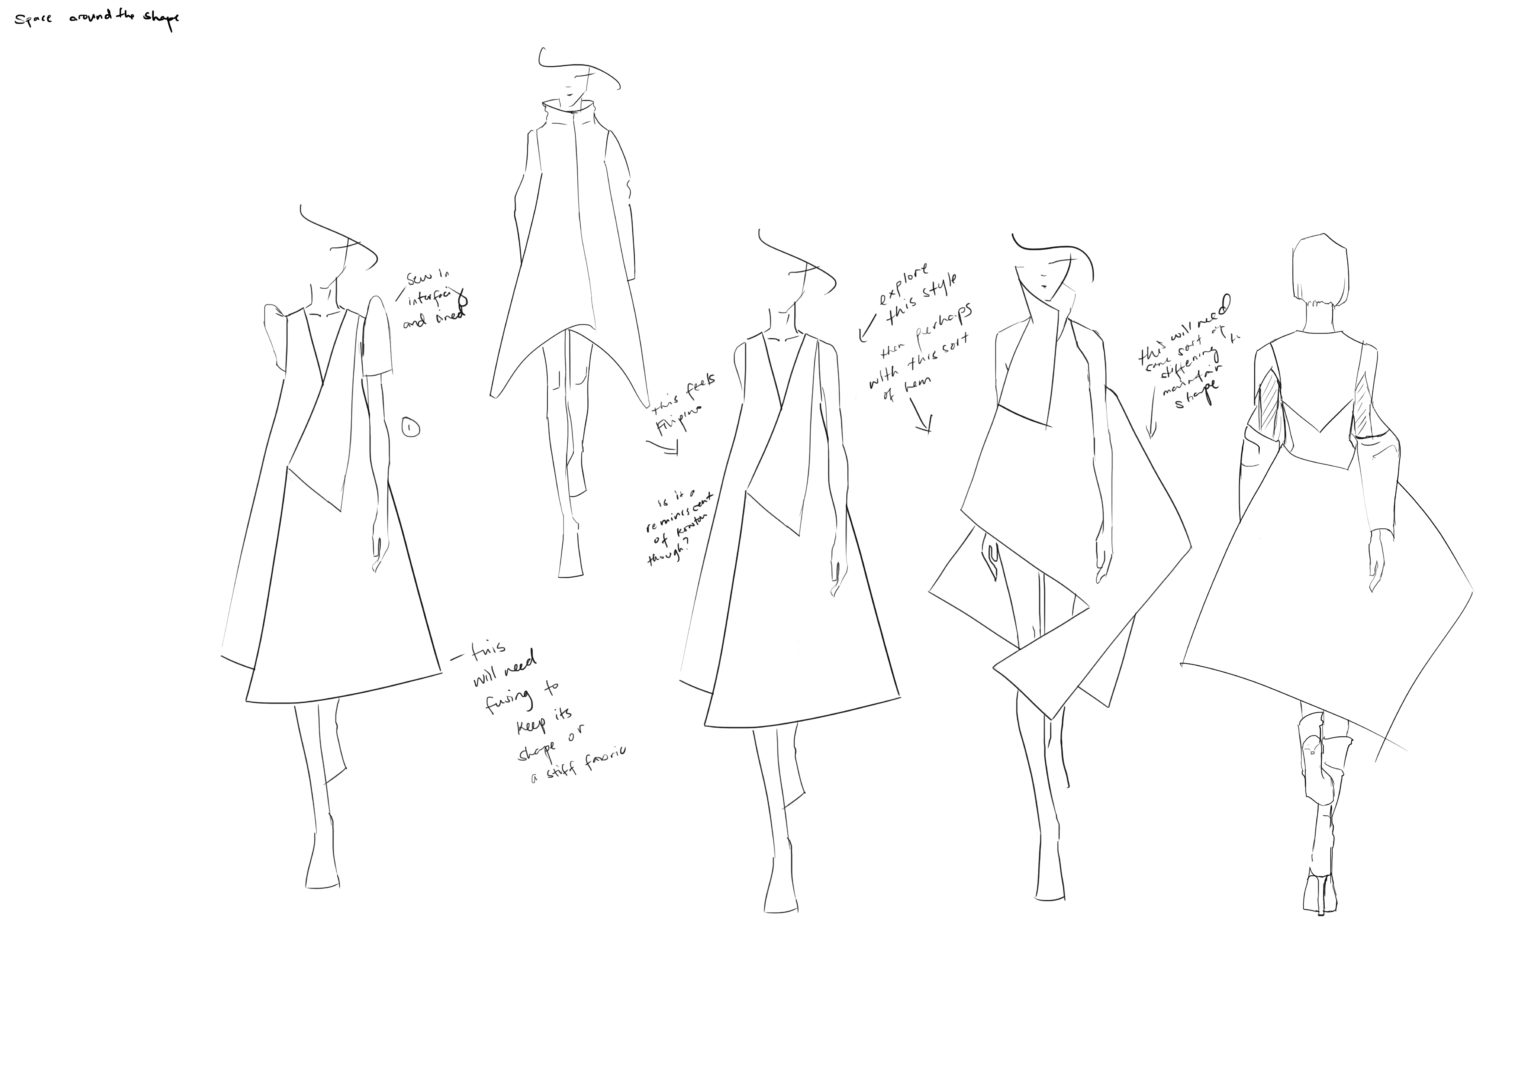 Draft 3. Exploring the triangle shape through the space around the body and incorporating the terno sleeve